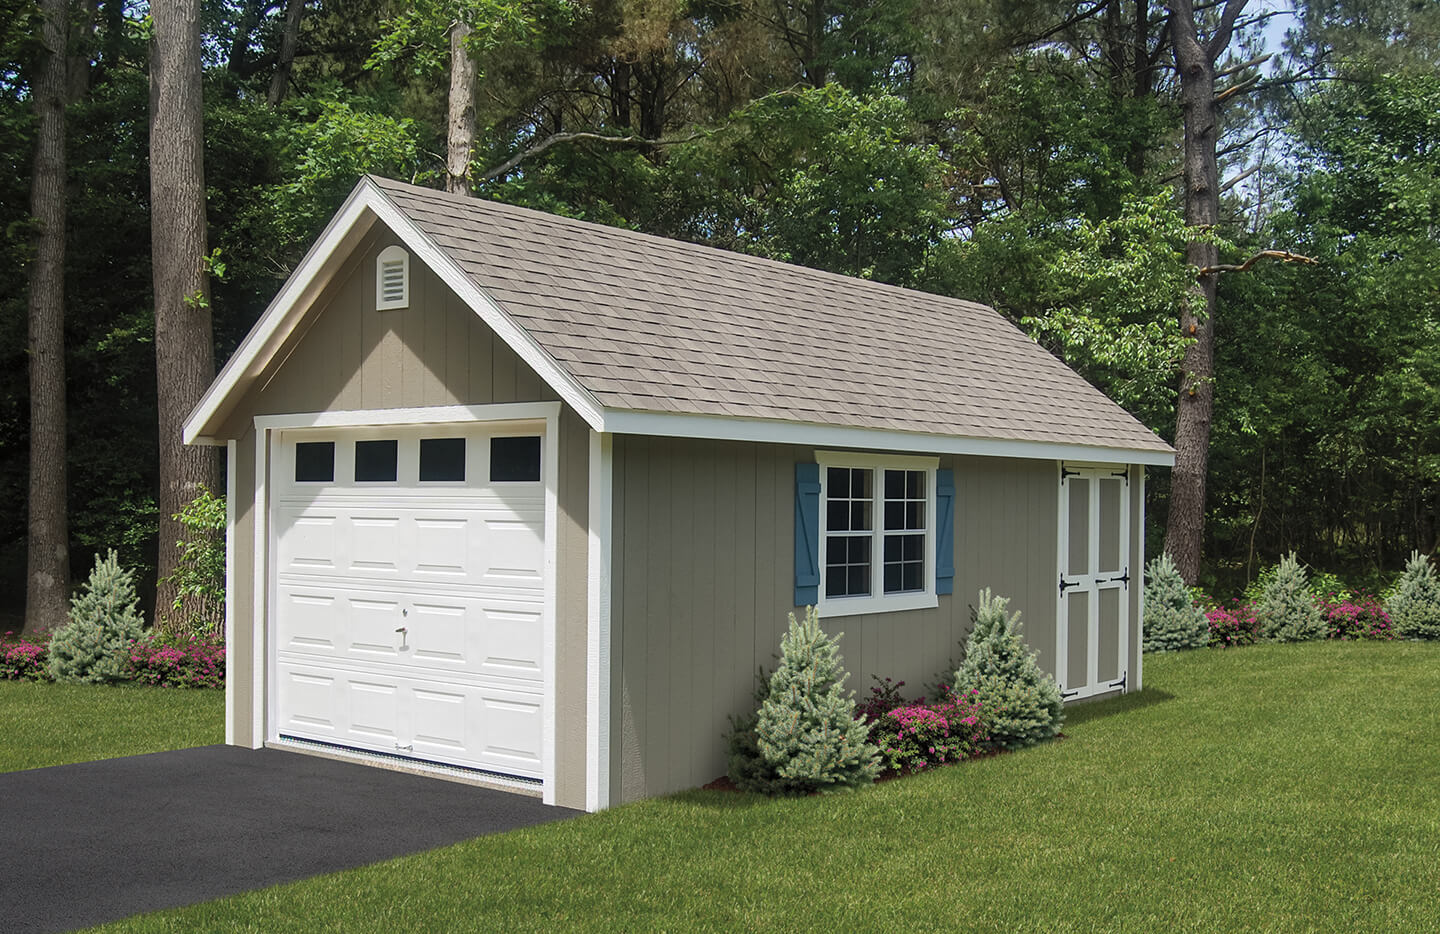 Custom storage garage in Long Island NY.